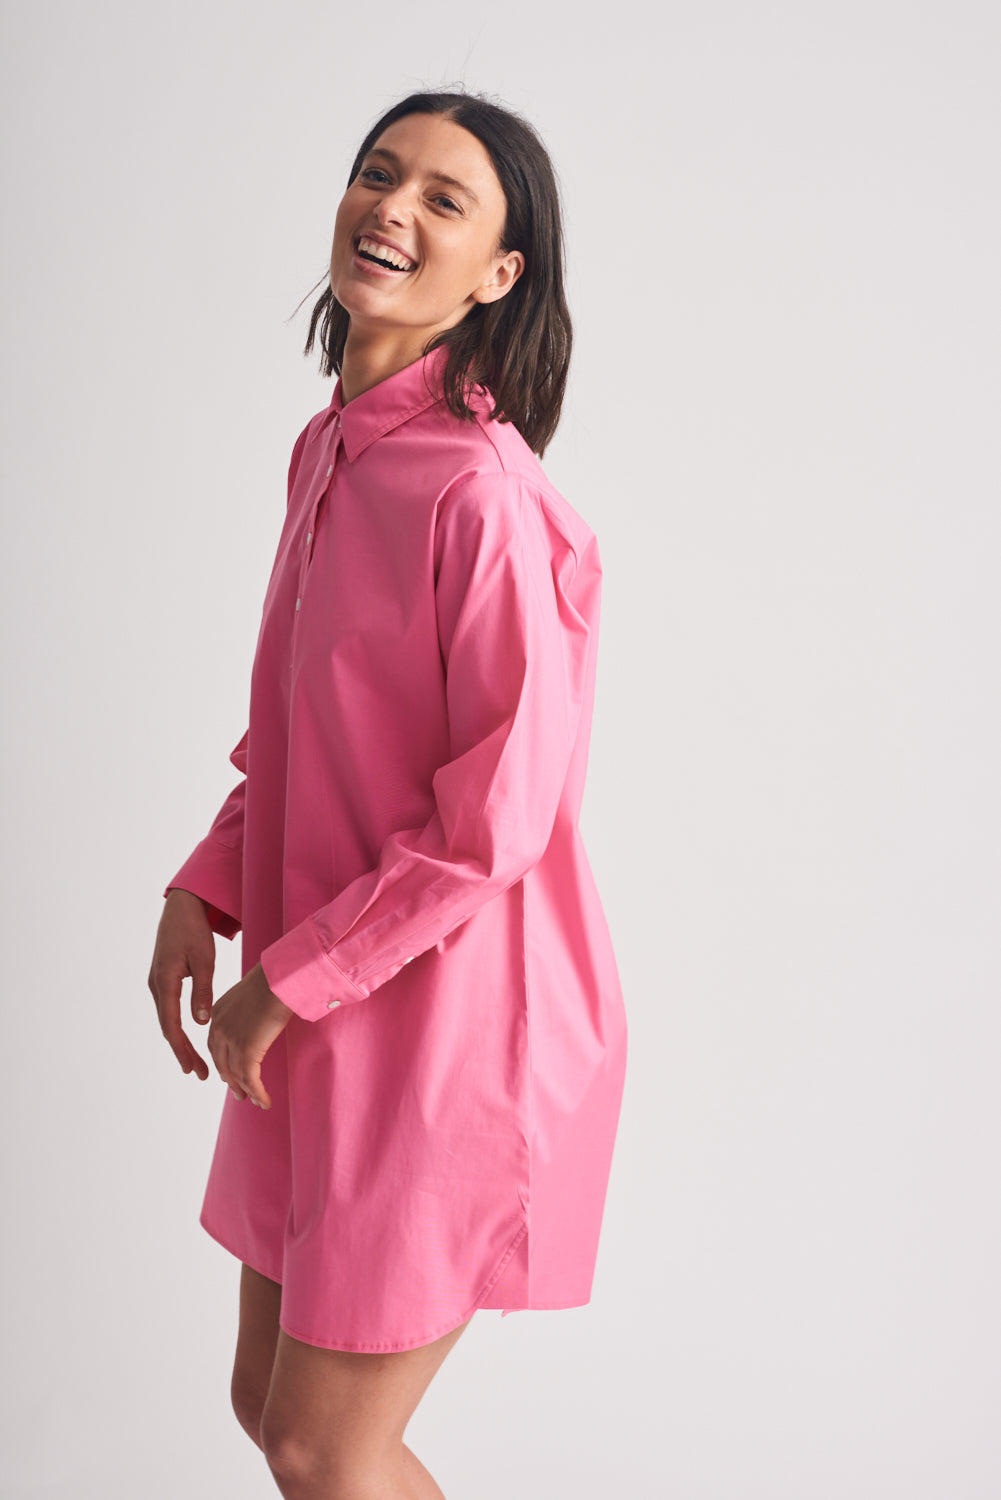 Shirty Shirt Dress Hot Pink